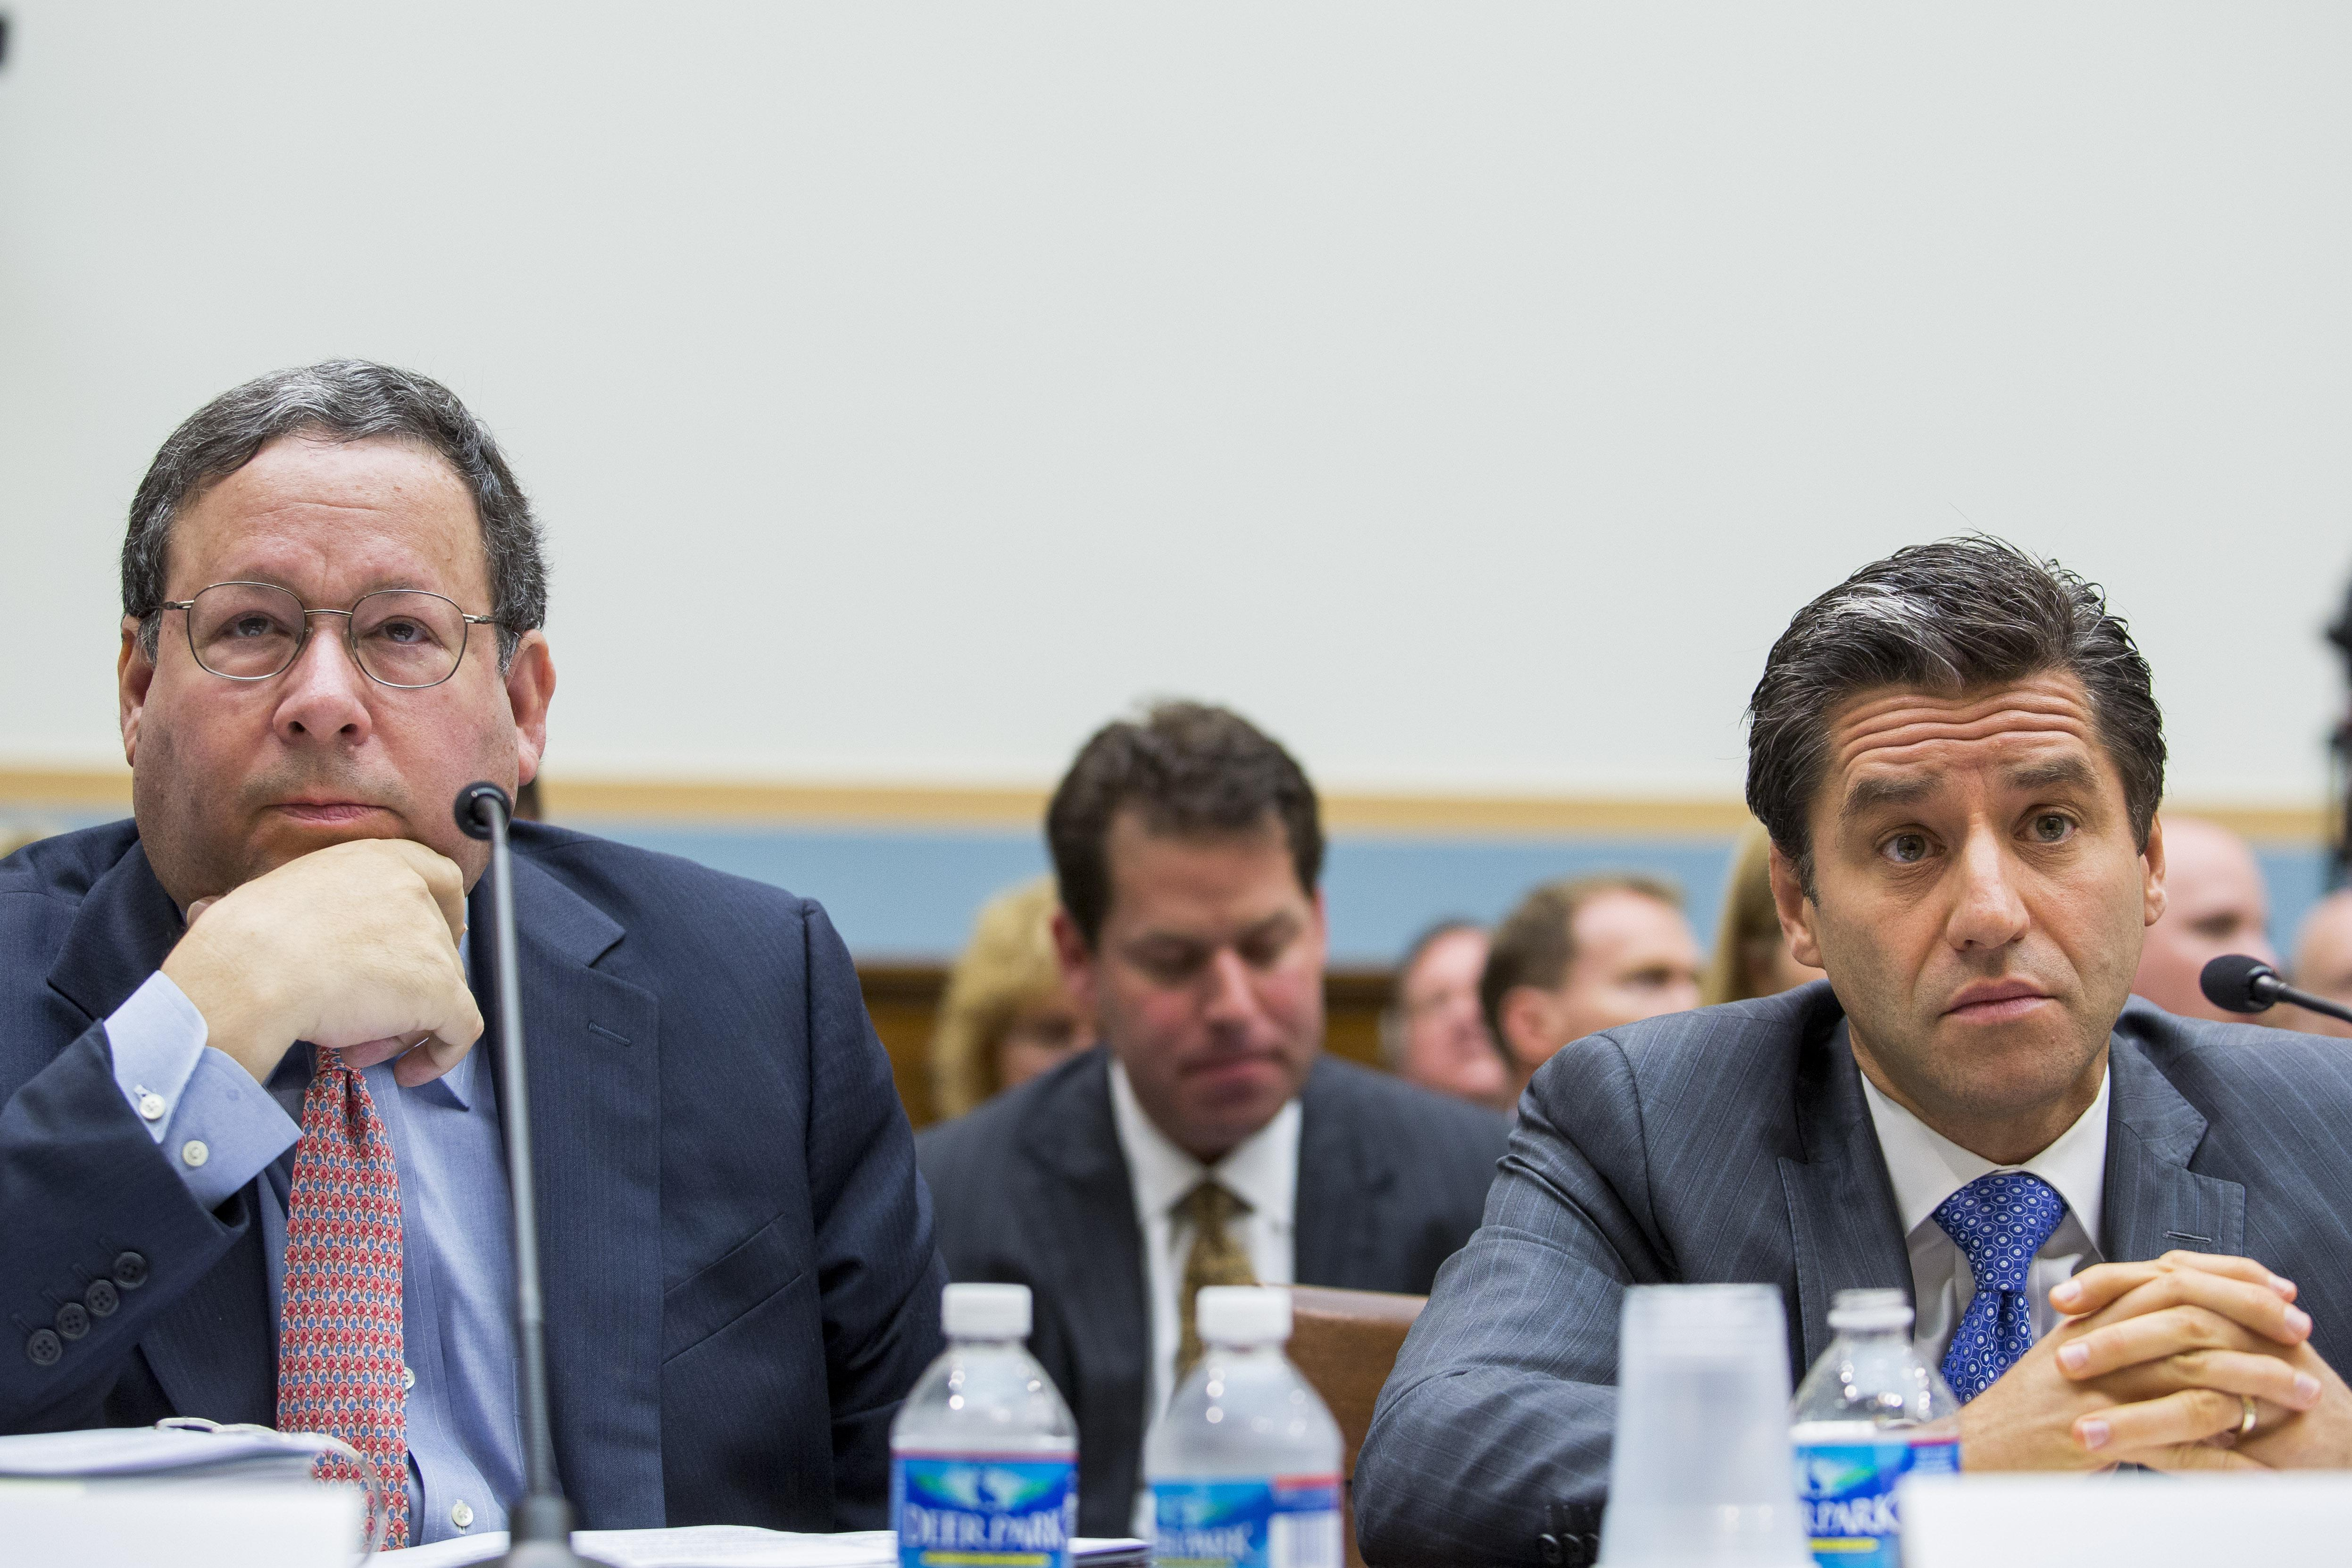 David Cohen, executive vice president of Comcast, and Robert Marcus, CEO of Time Warner Cable, attend a hearing on their proposed merger in May 2014.